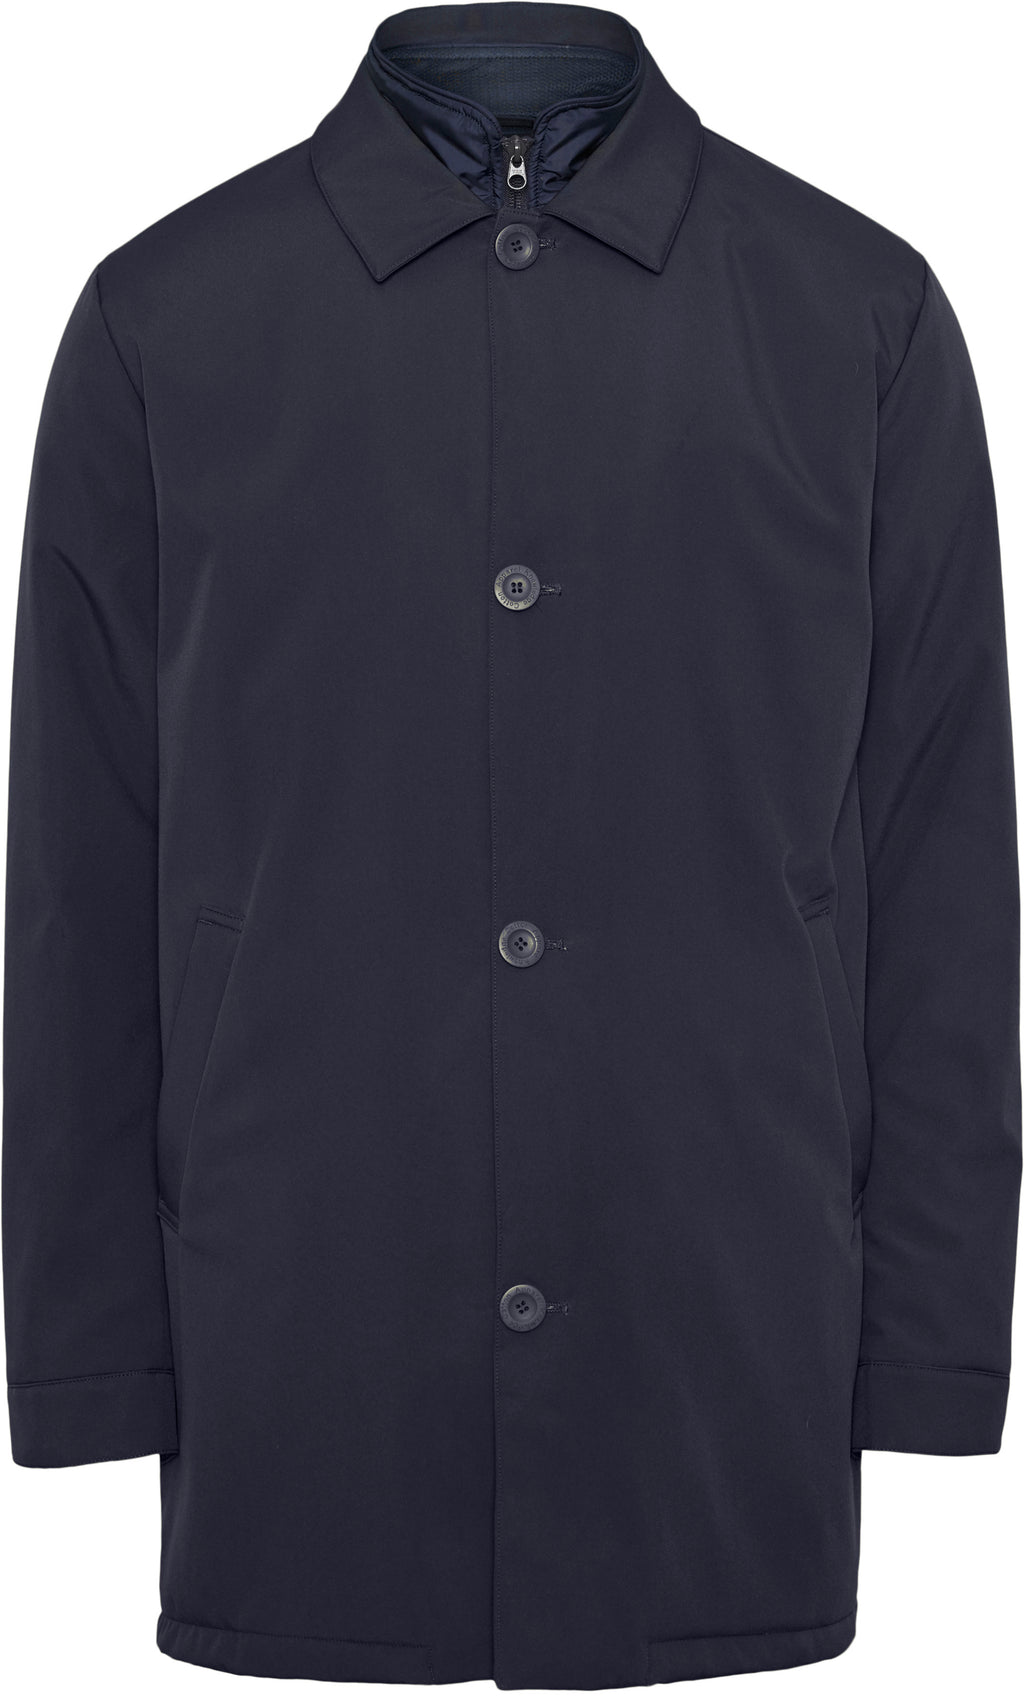 Arctic Canvas Jacket with buttons